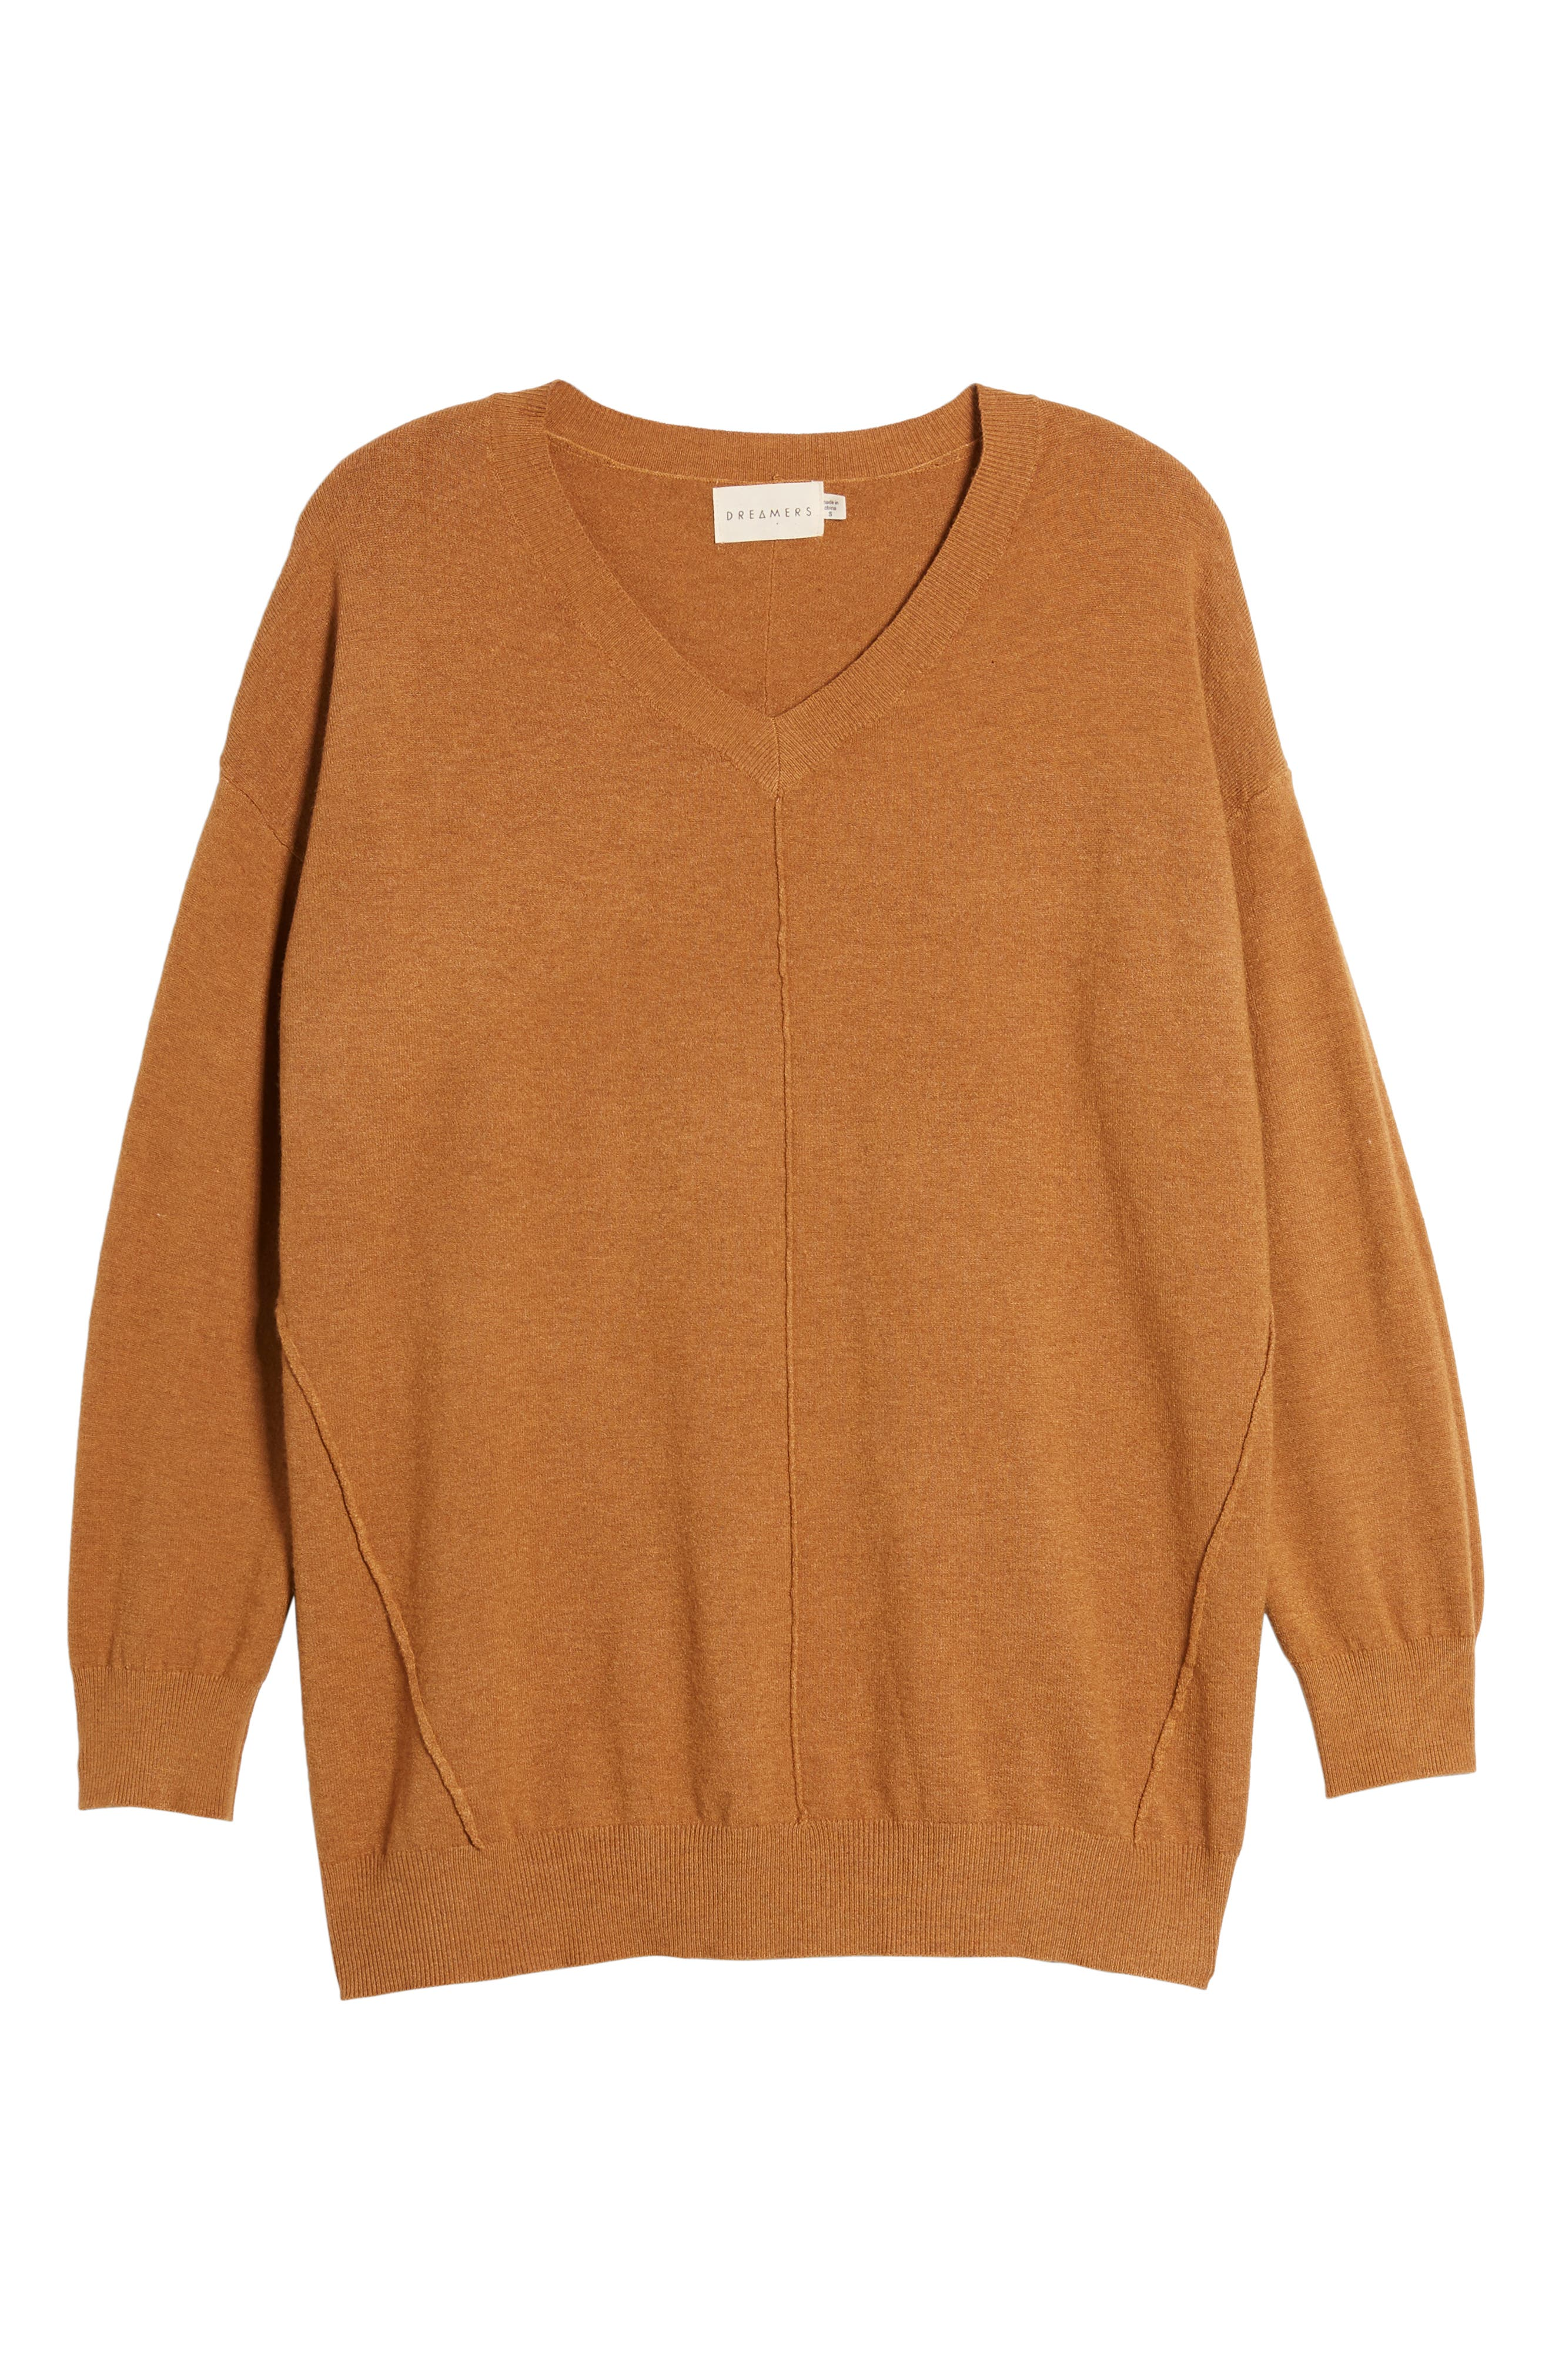 Exposed Seam Sweater,                             Alternate thumbnail 30, color,